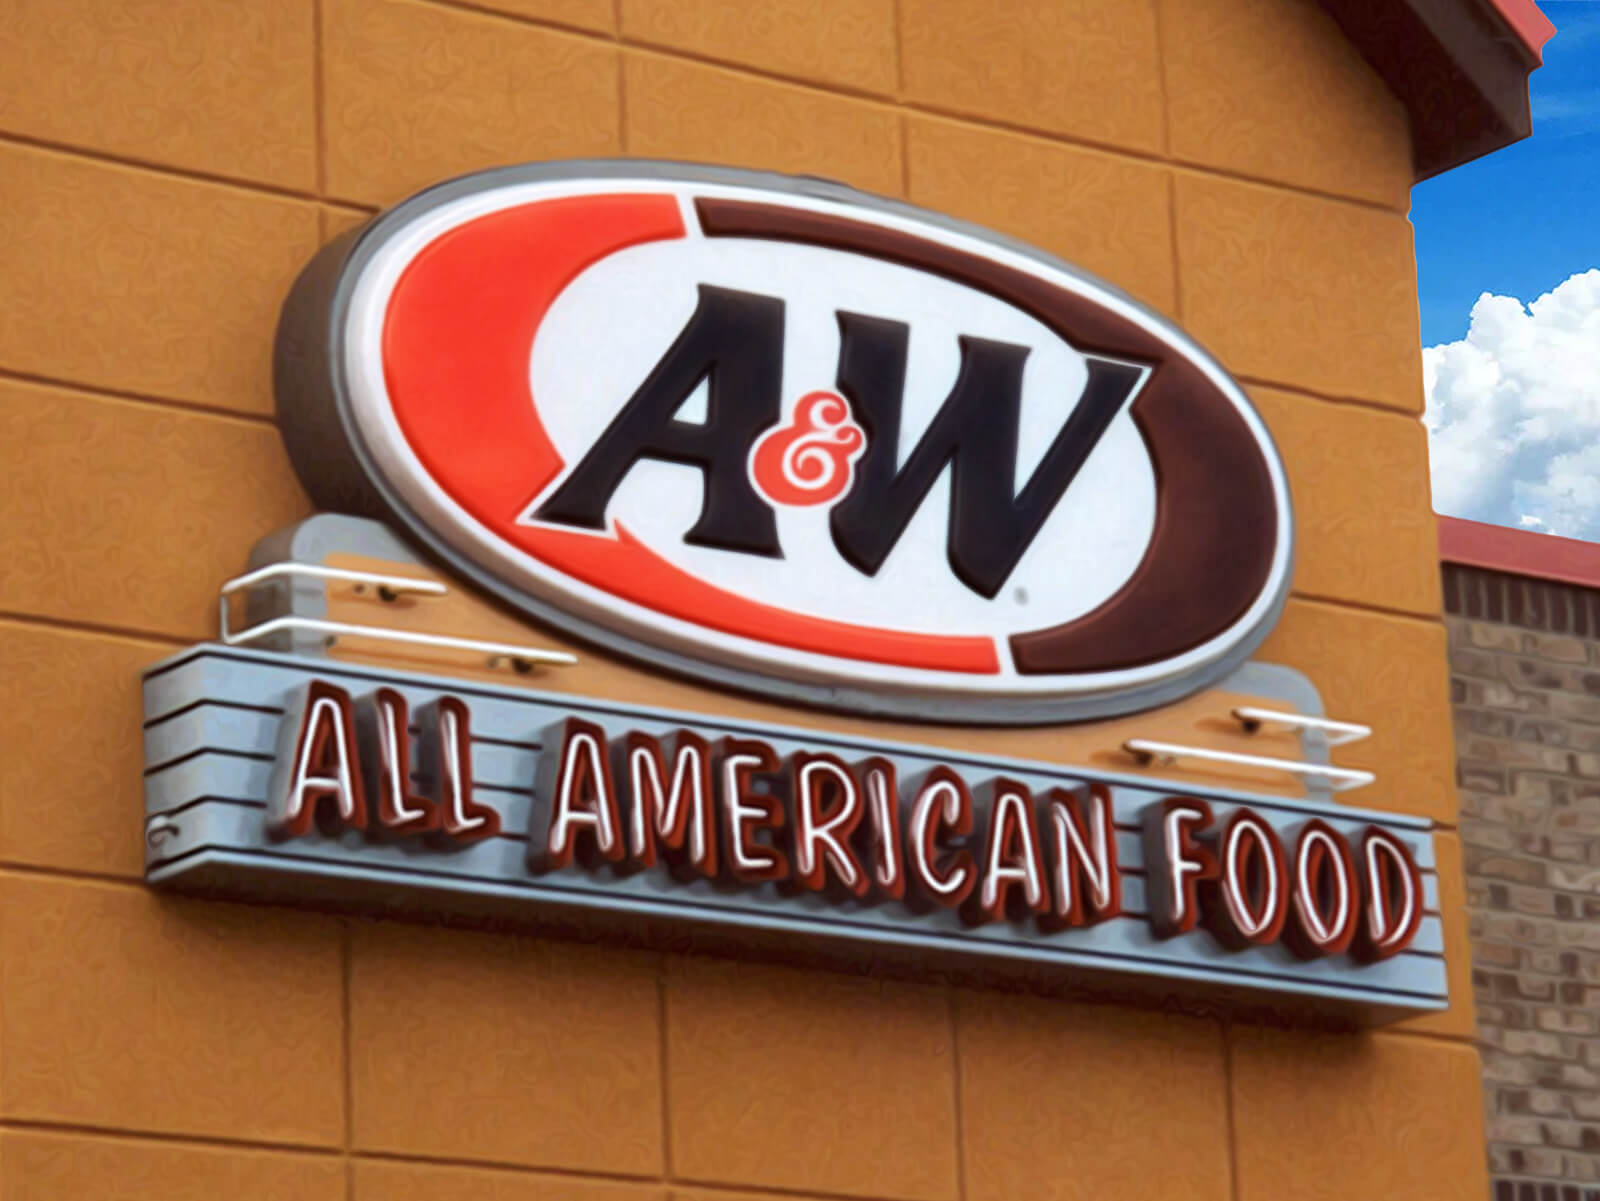 An all american made sign for an all american restaurant using a combination of modern thermoforming techniques with timeless neon lighting.